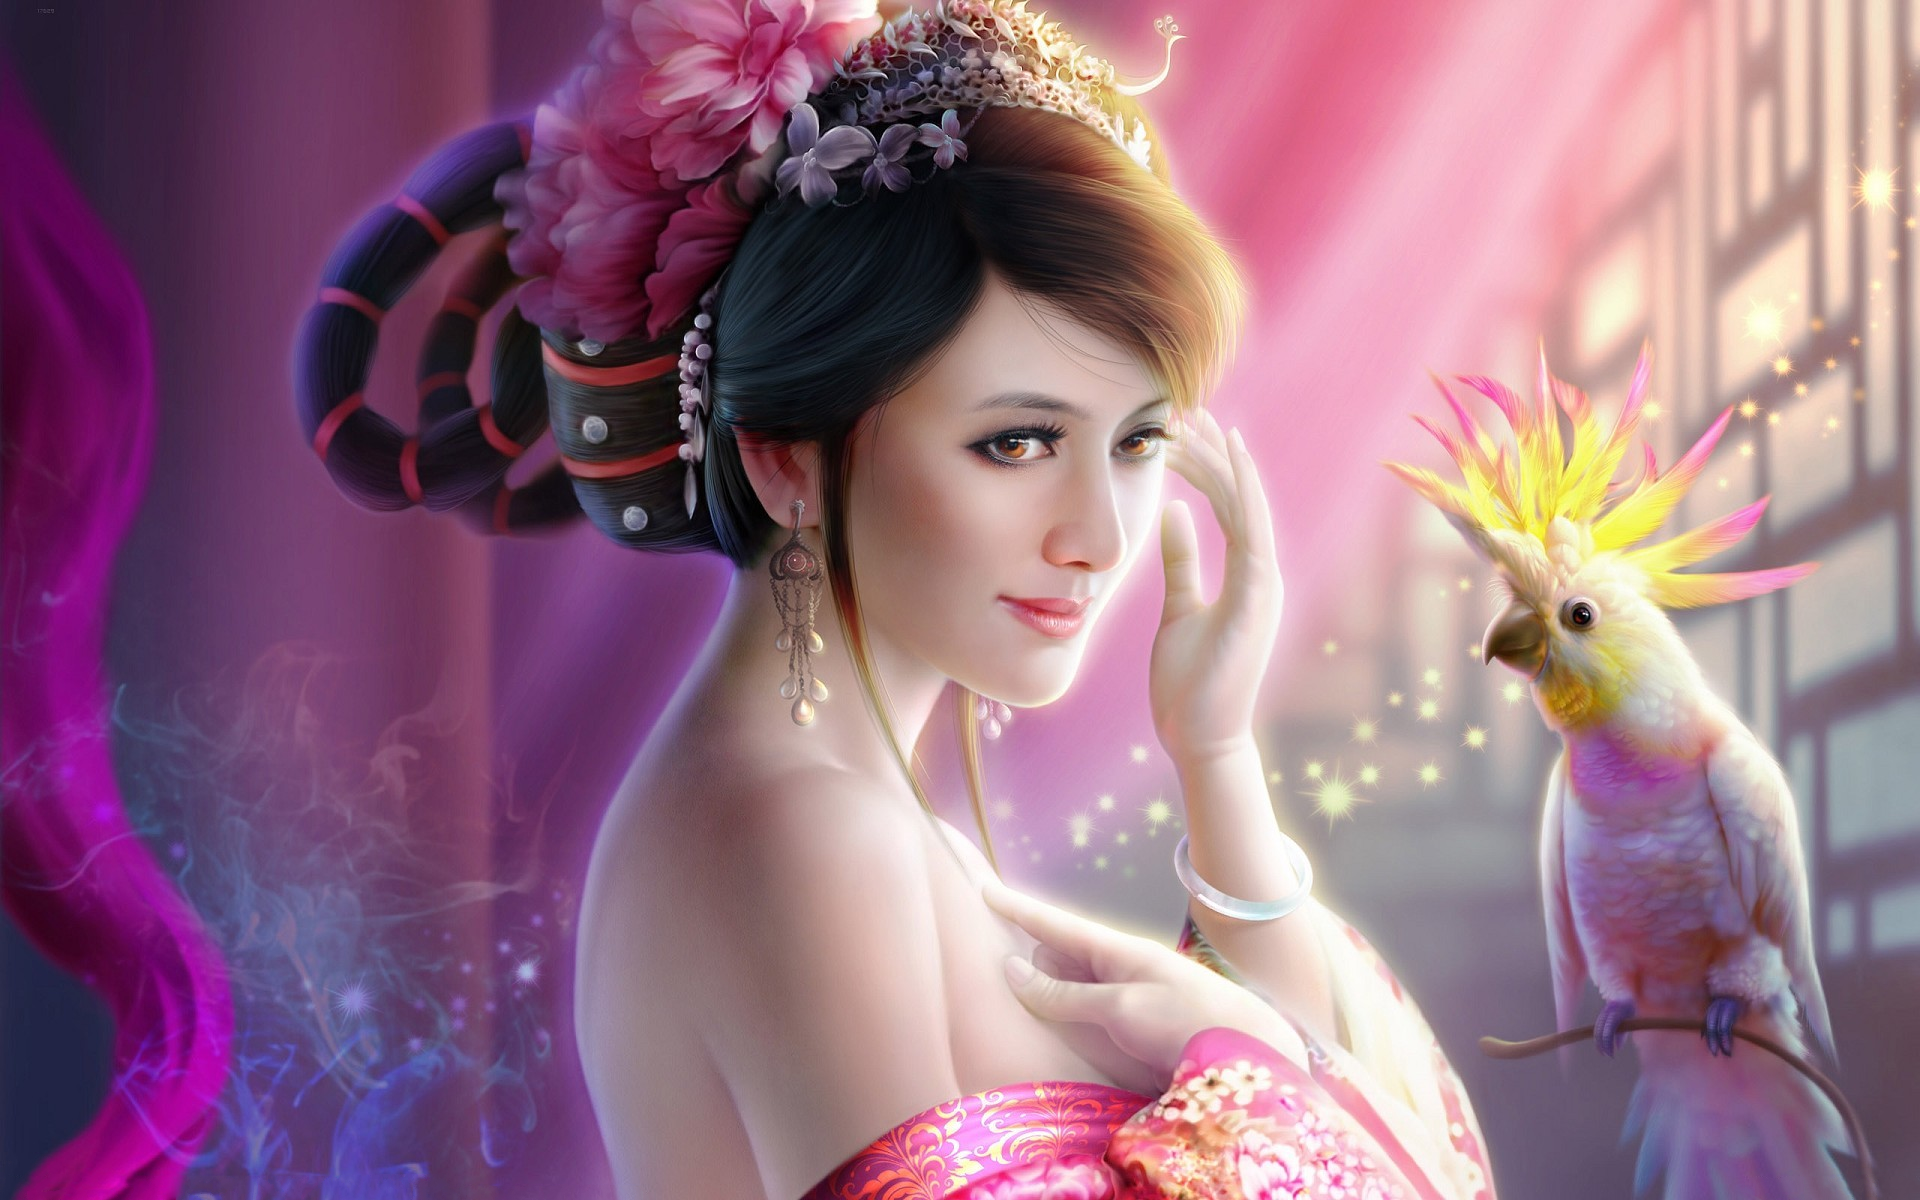 Fantasy - Women  Fantasy Oriental Woman Parrot Brunette Wallpaper